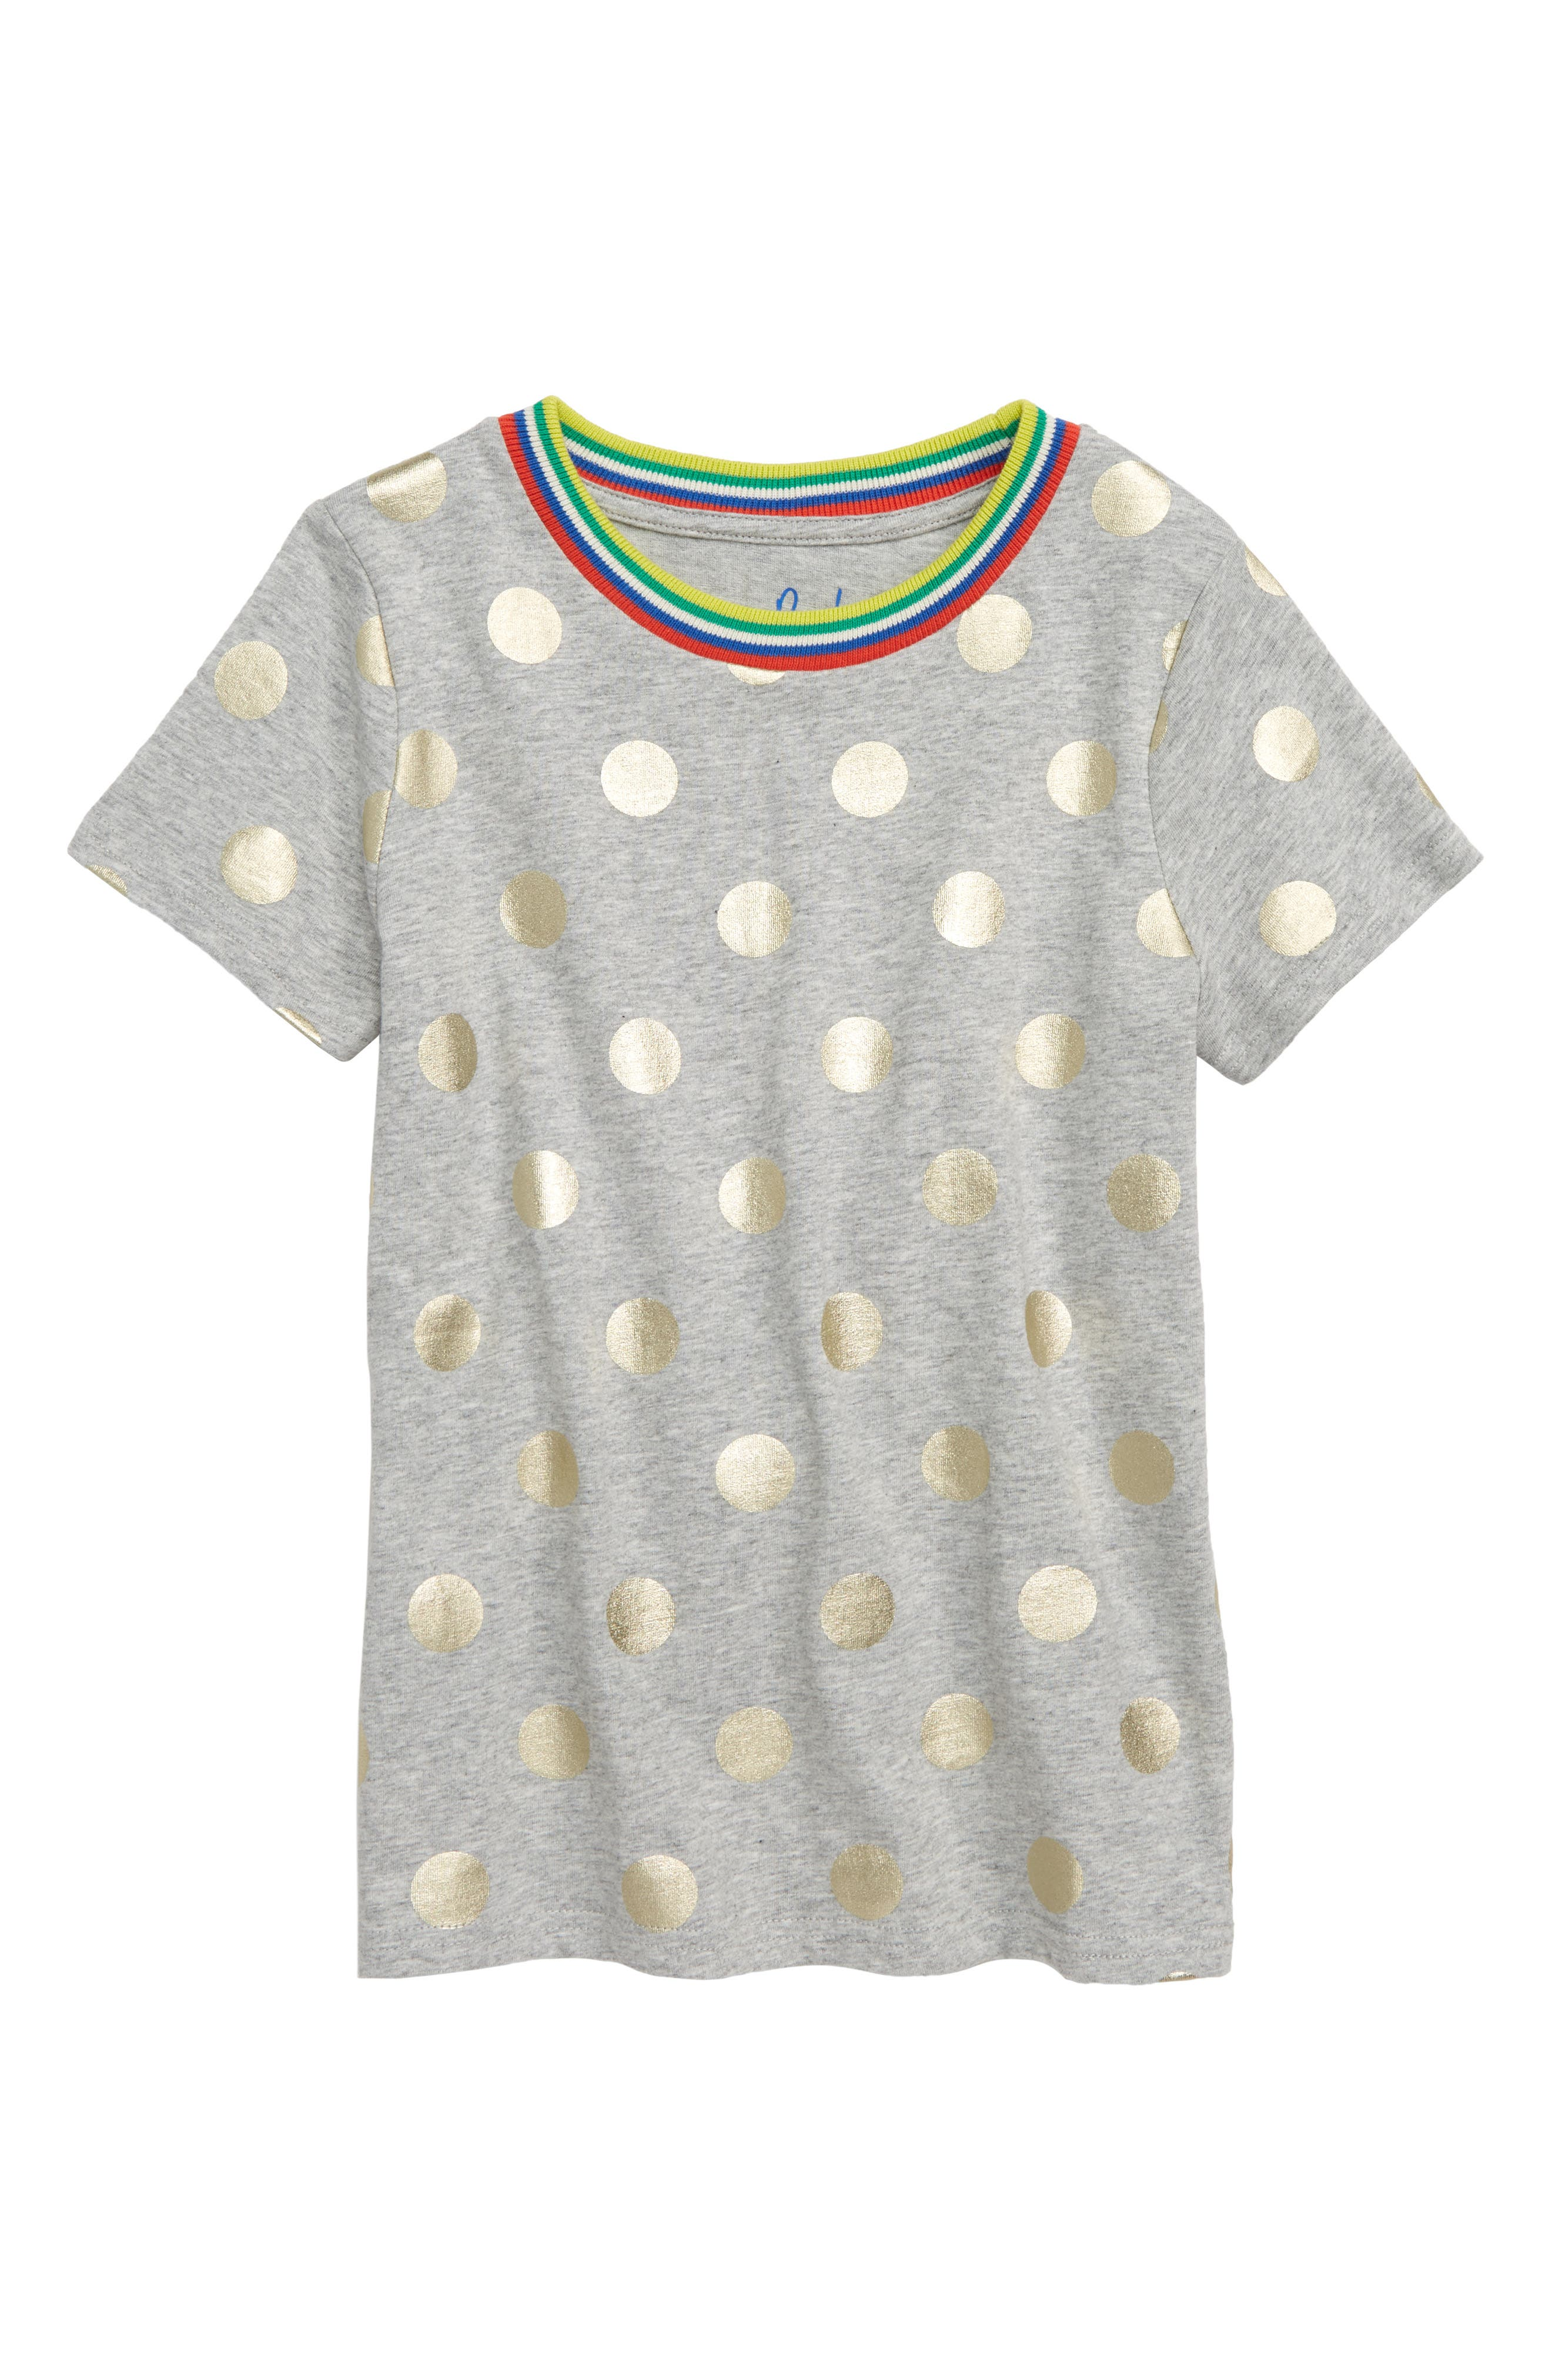 Time to Shine Tee,                             Main thumbnail 1, color,                             GREY MARLE/ GOLD FOIL SPOT